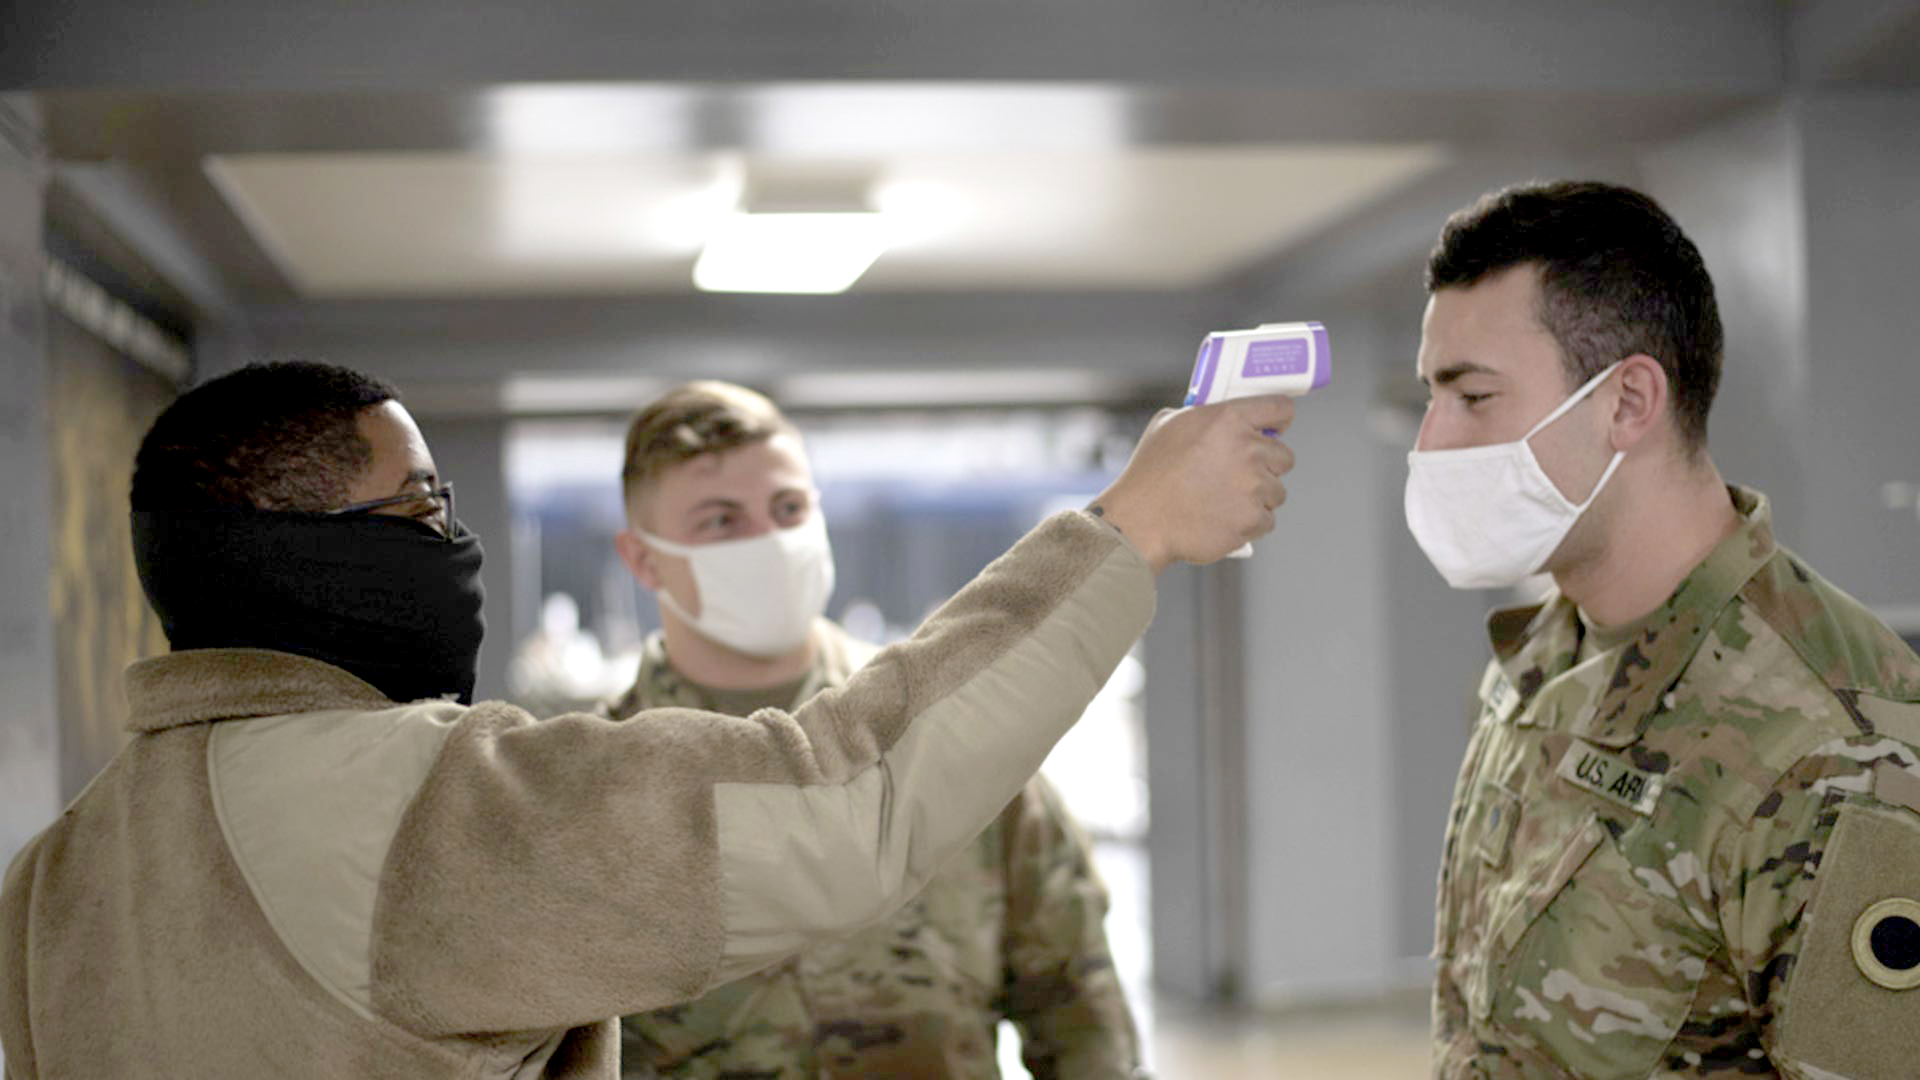 Three men with face masks watch temperature check on service member